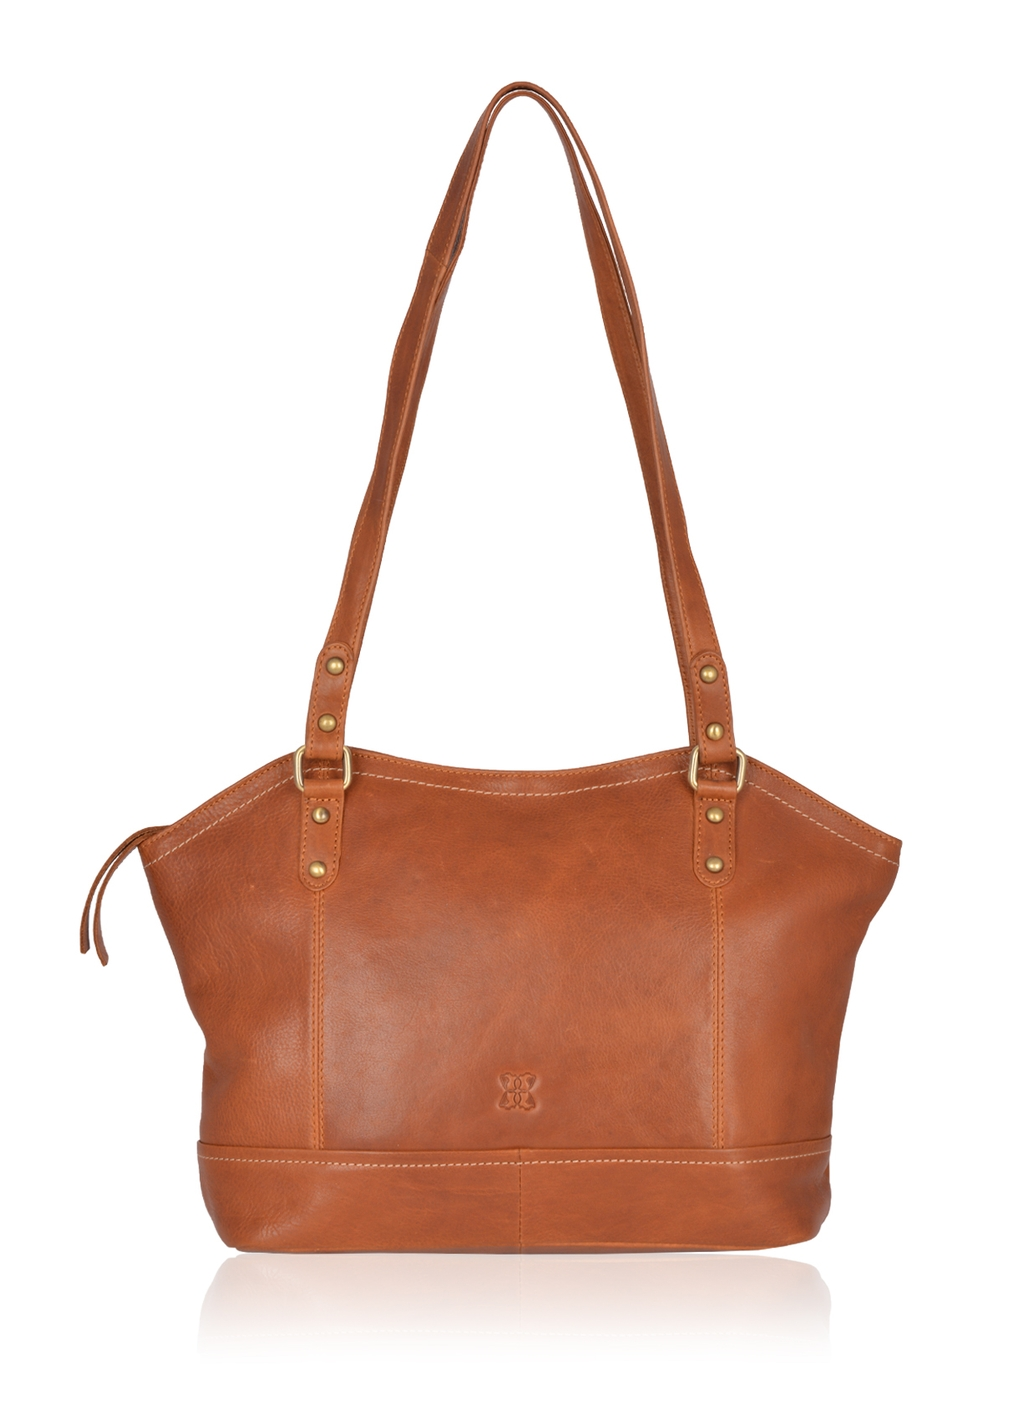 Allonby Leather Shopper Bag in Tan